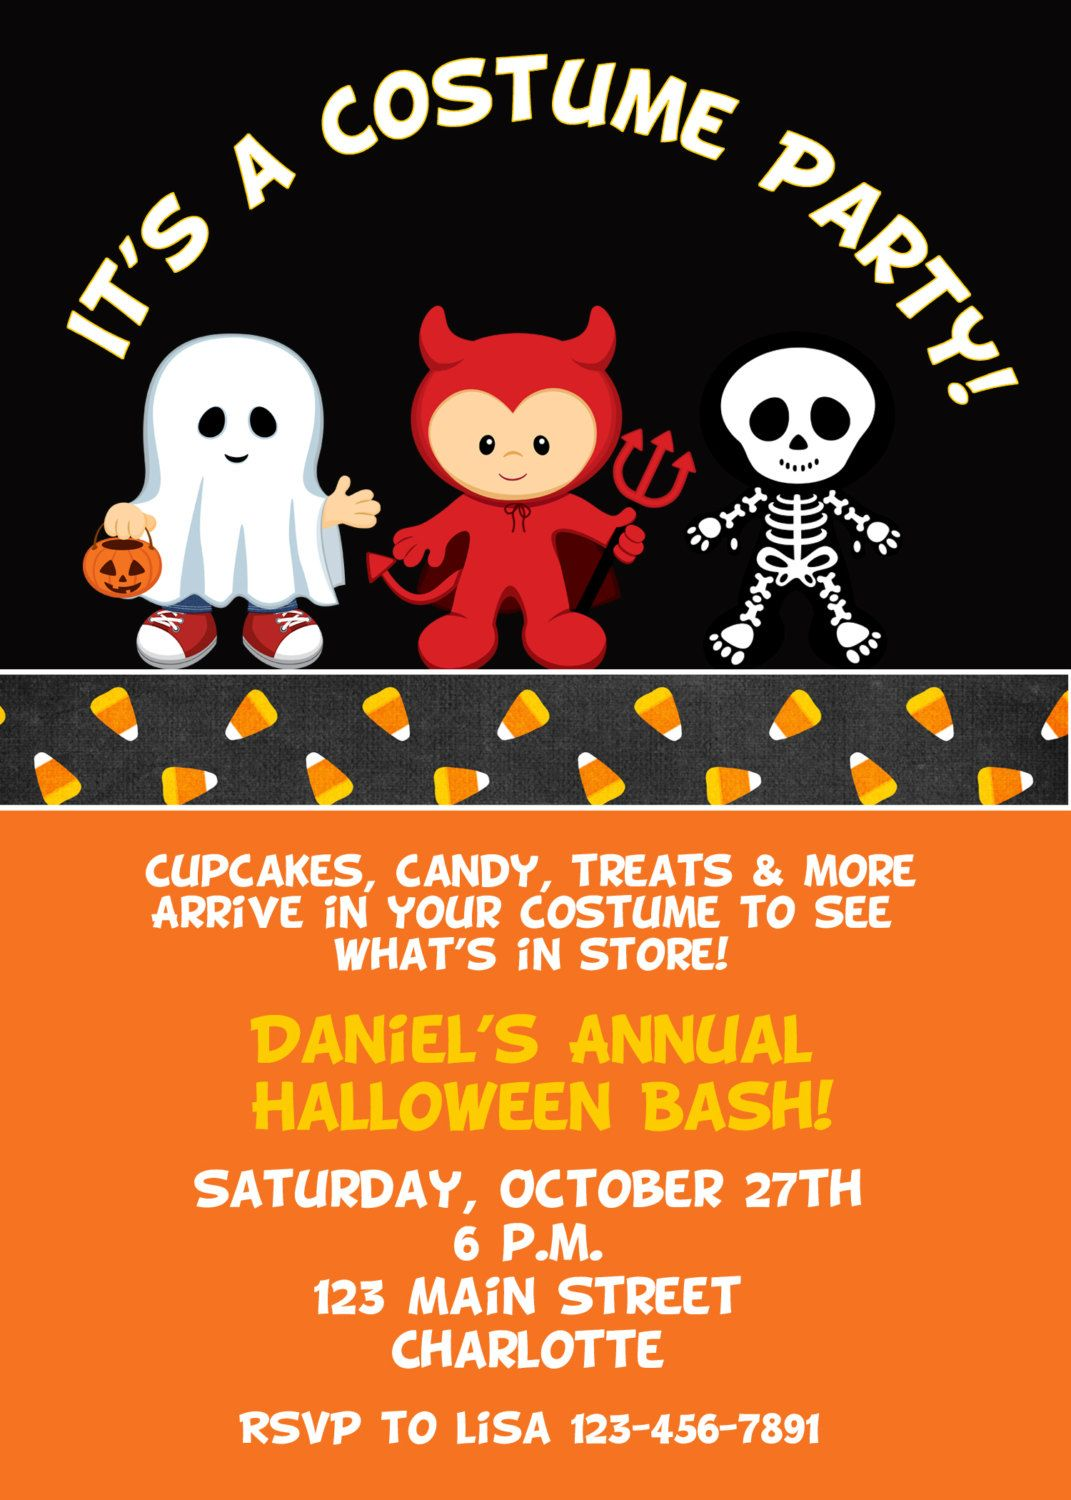 Costume Party Birthday InvitationBoys Halloween Party Printable – Costume Party Invitations Free Printable